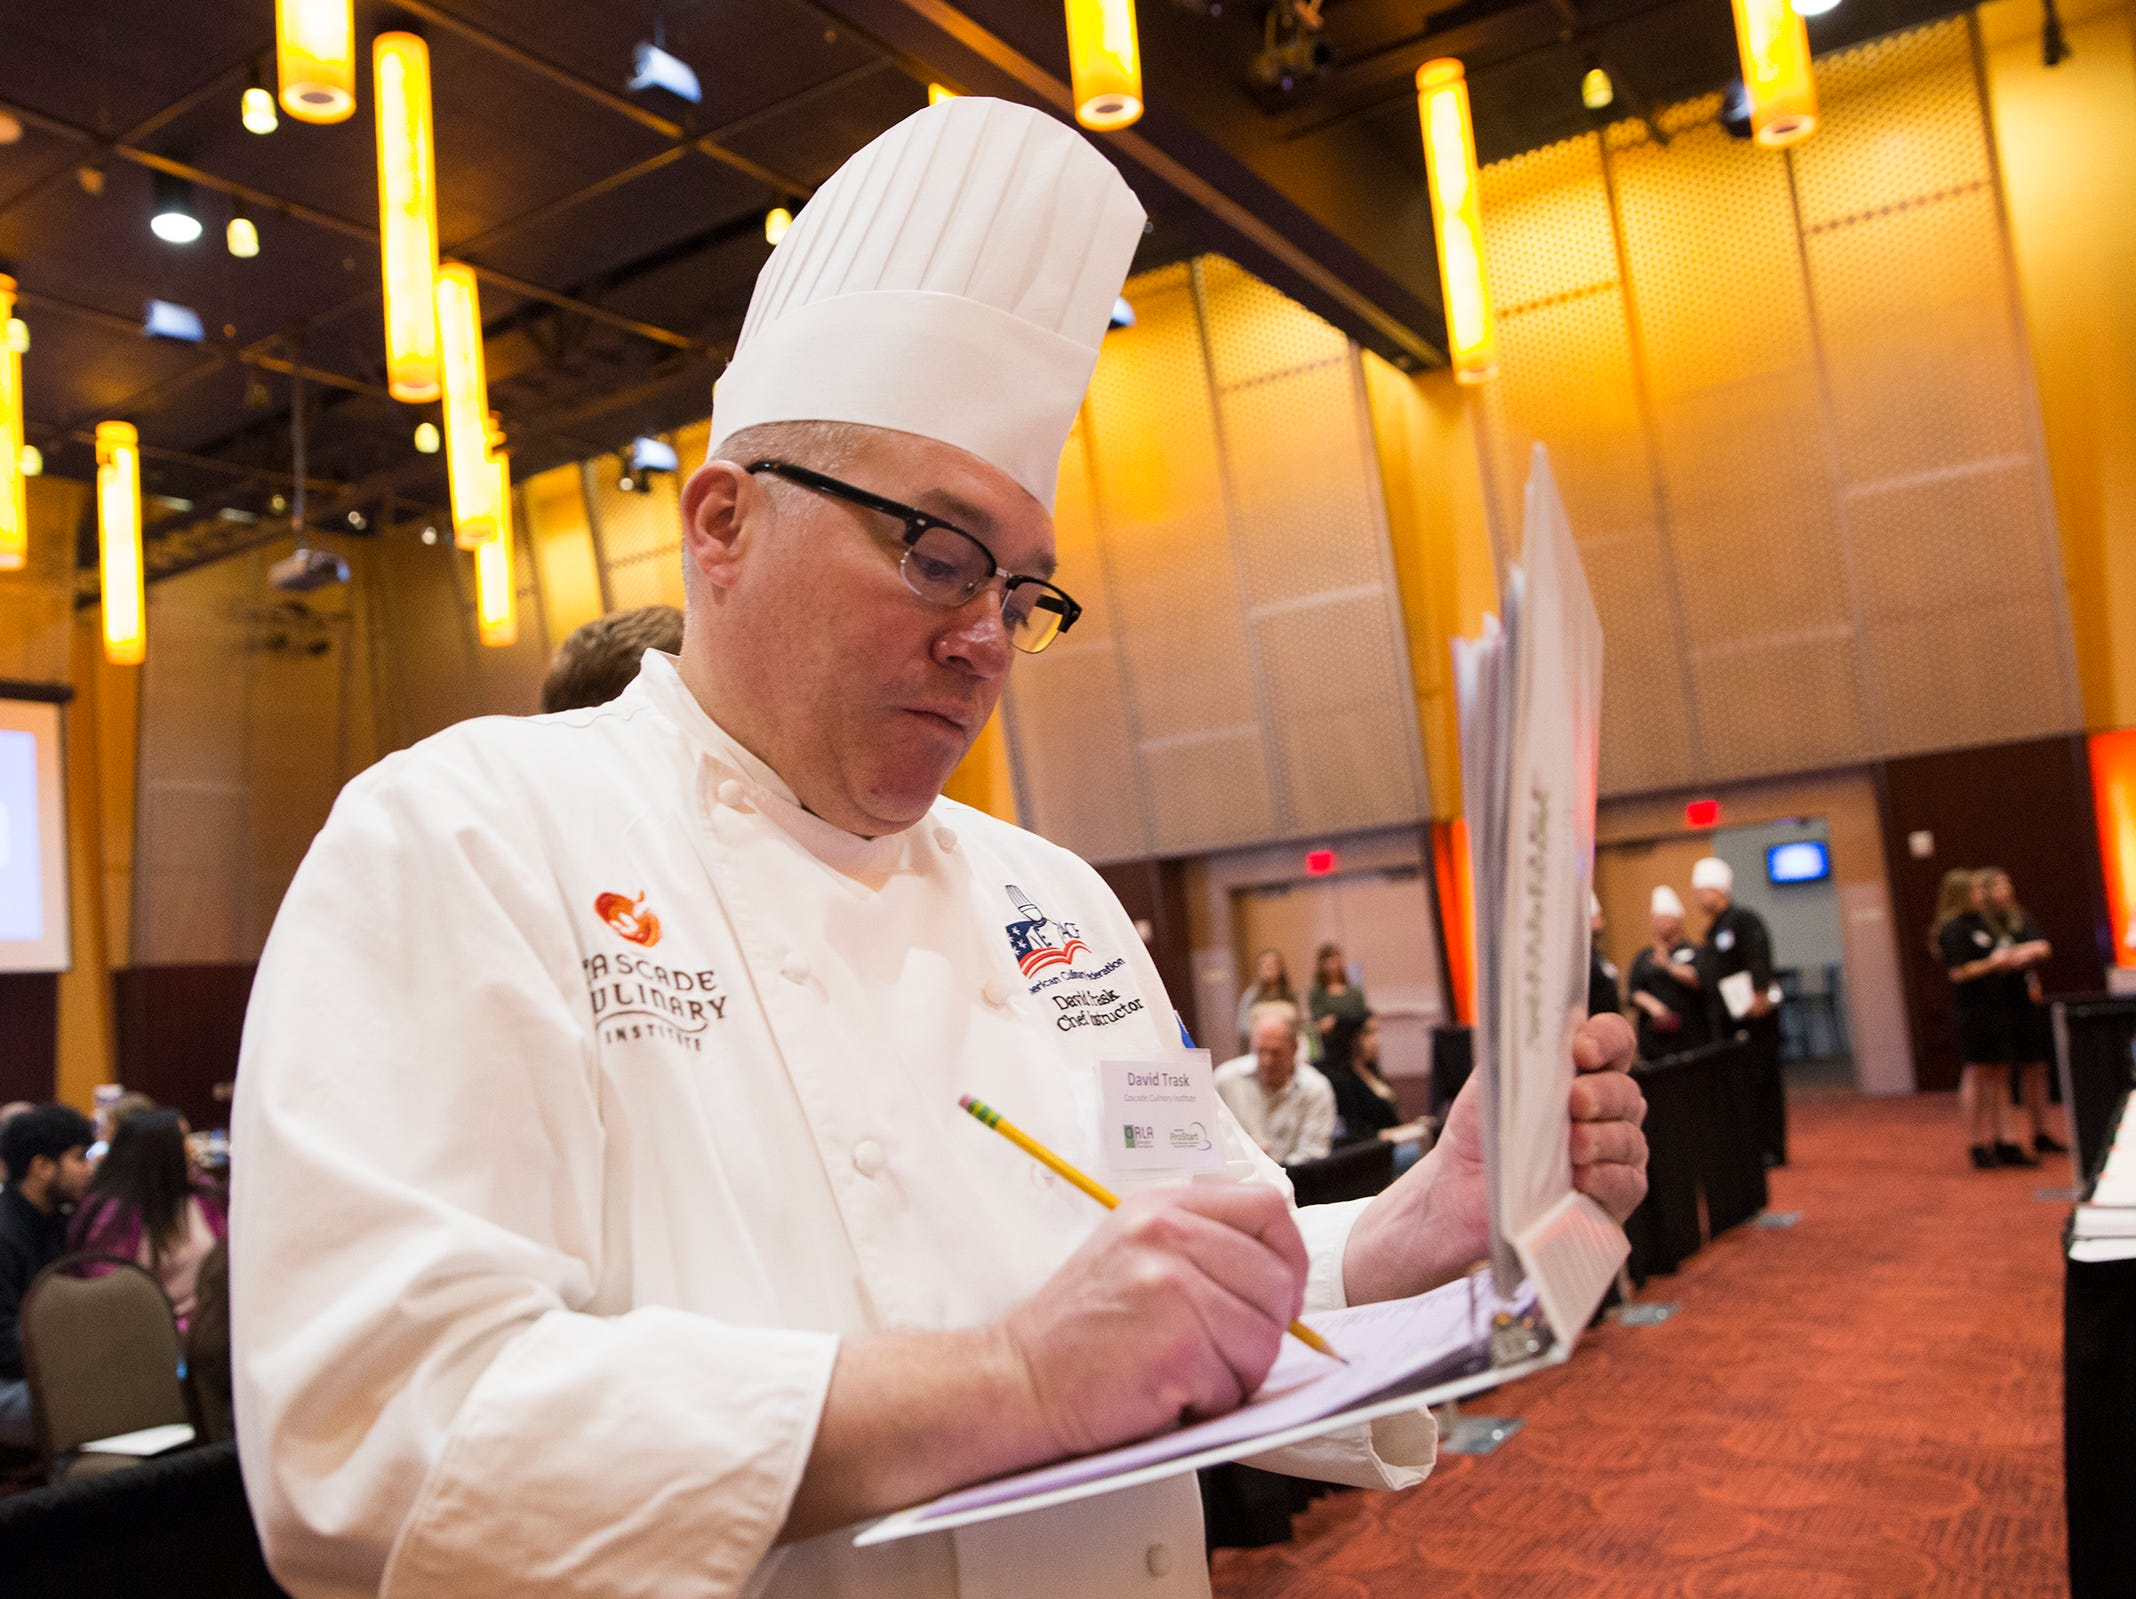 Chef David Trask takes notes during the ORLAEF's ProStart Invitational, a statewide high school culinary competition, at the Salem Convention Center on March 18, 2019.